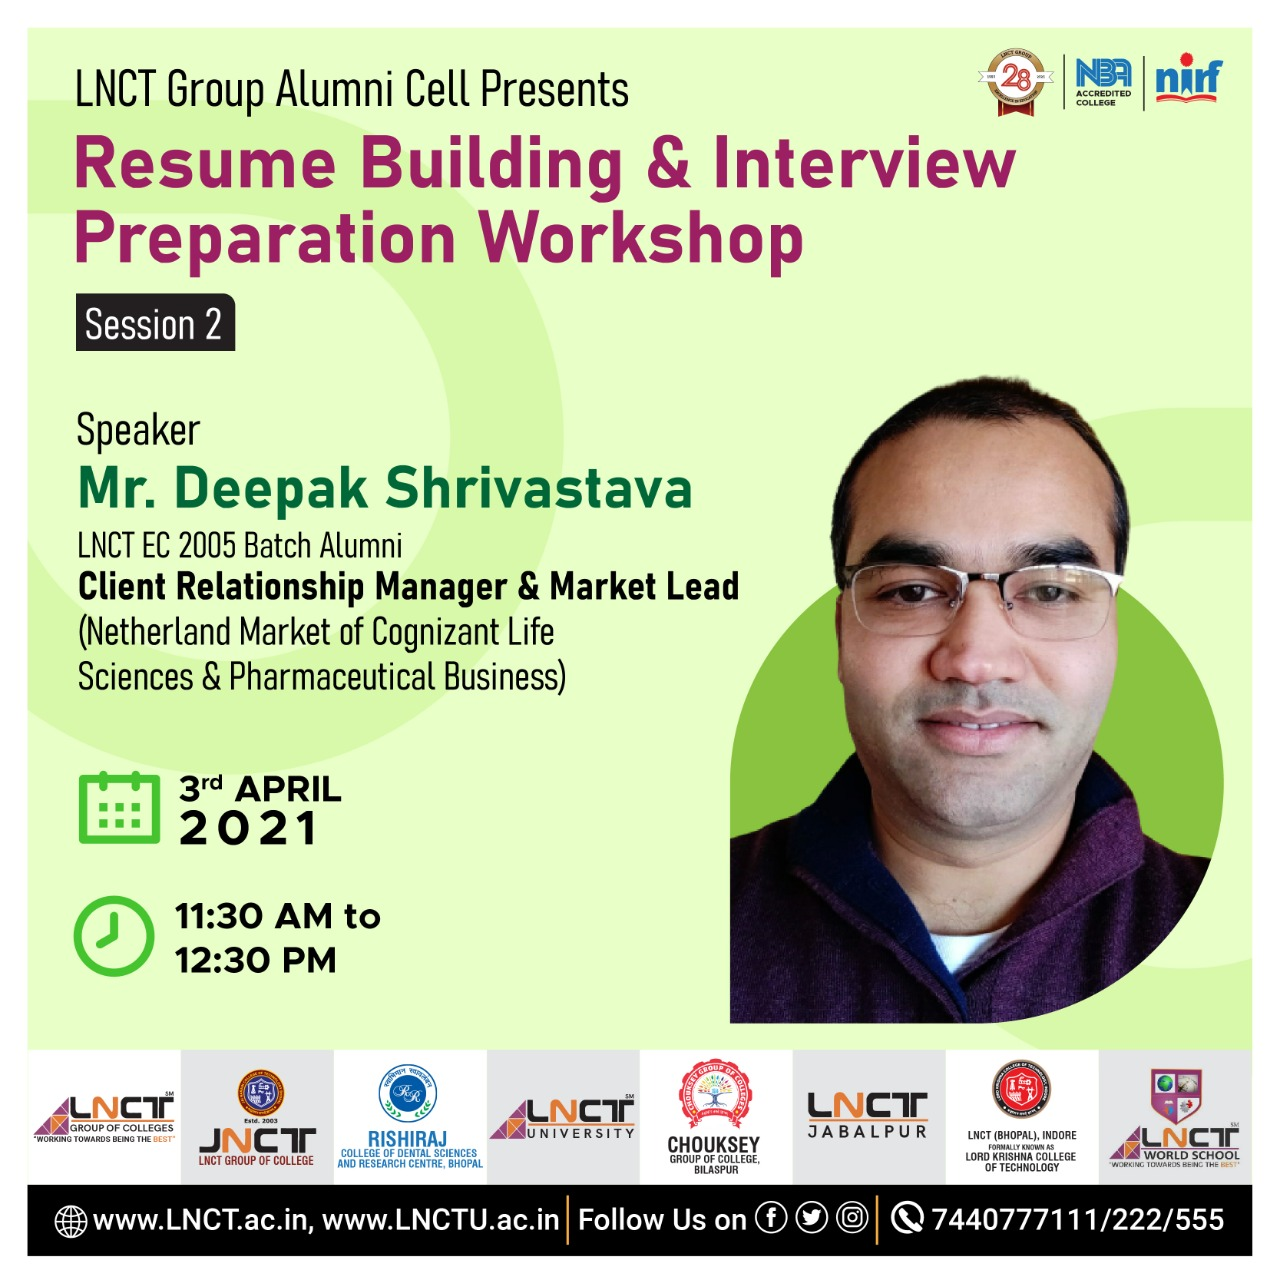 Resume Building & Interview Preparation Workshop 1